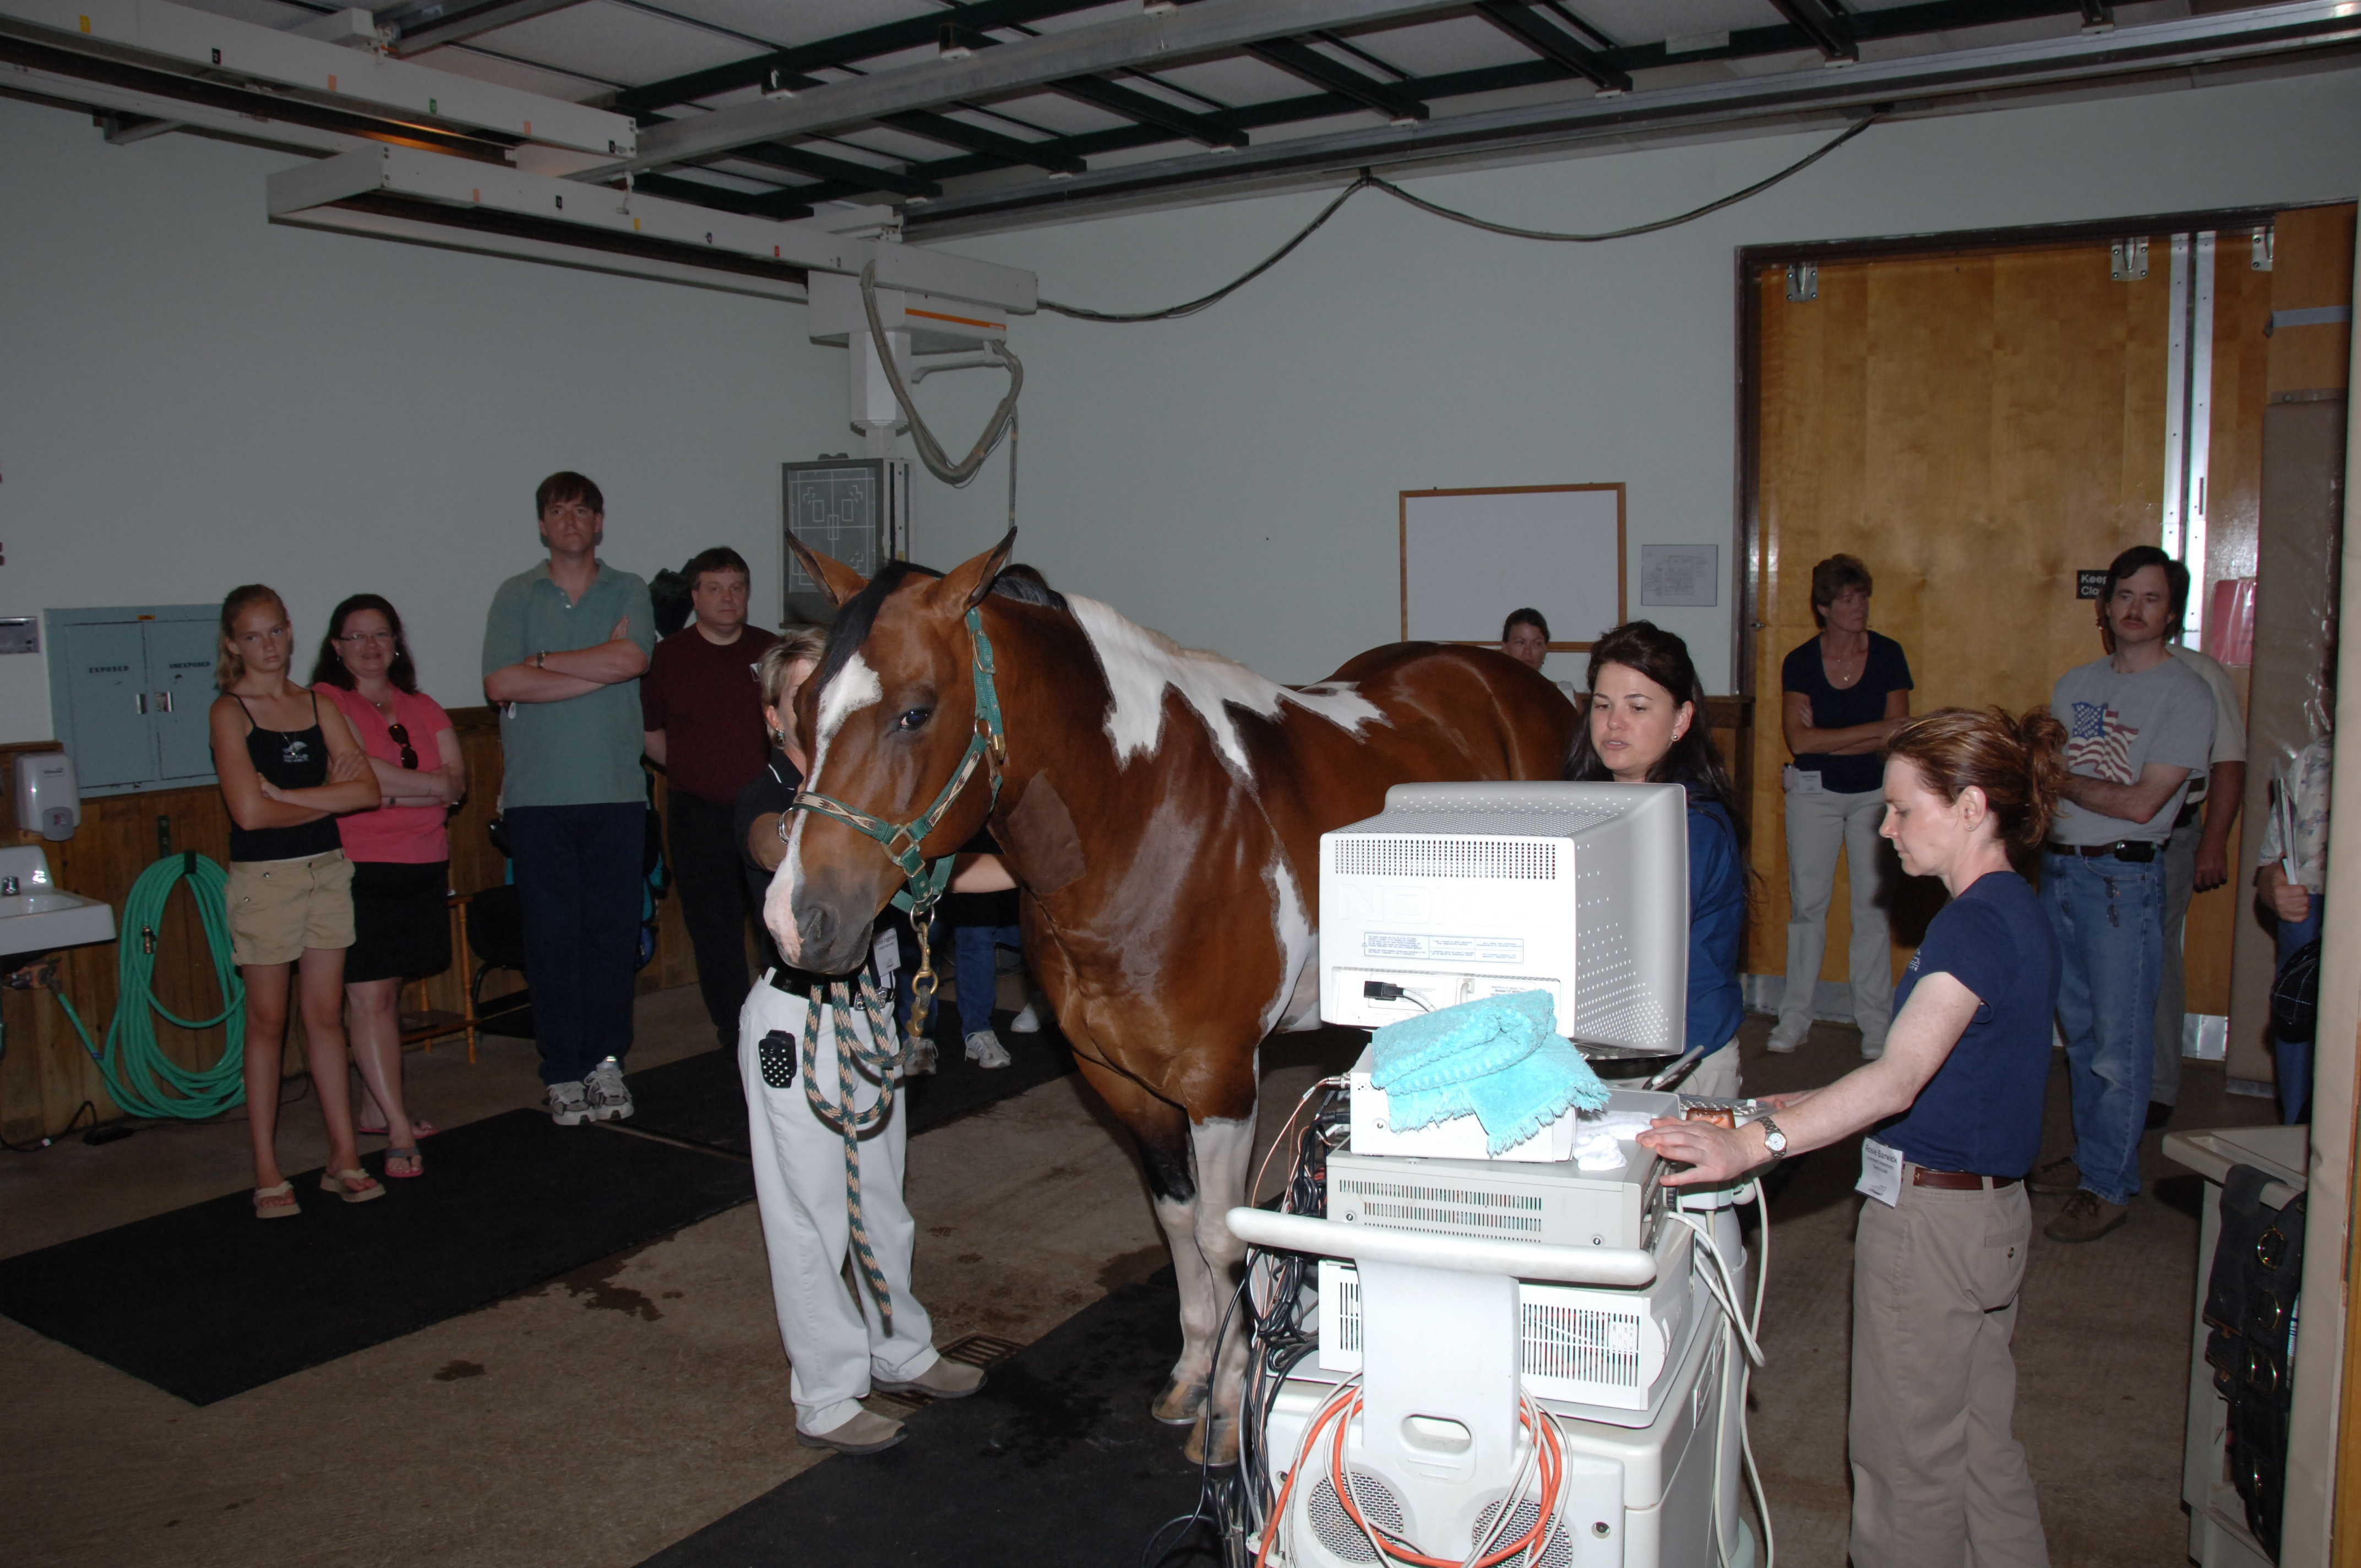 Some of the visitors to the equine medical center's recent open house are able to see how Dr. Anne Desrochers uses state-of-the-art ultrasound equipment to identify health problems in a horse.